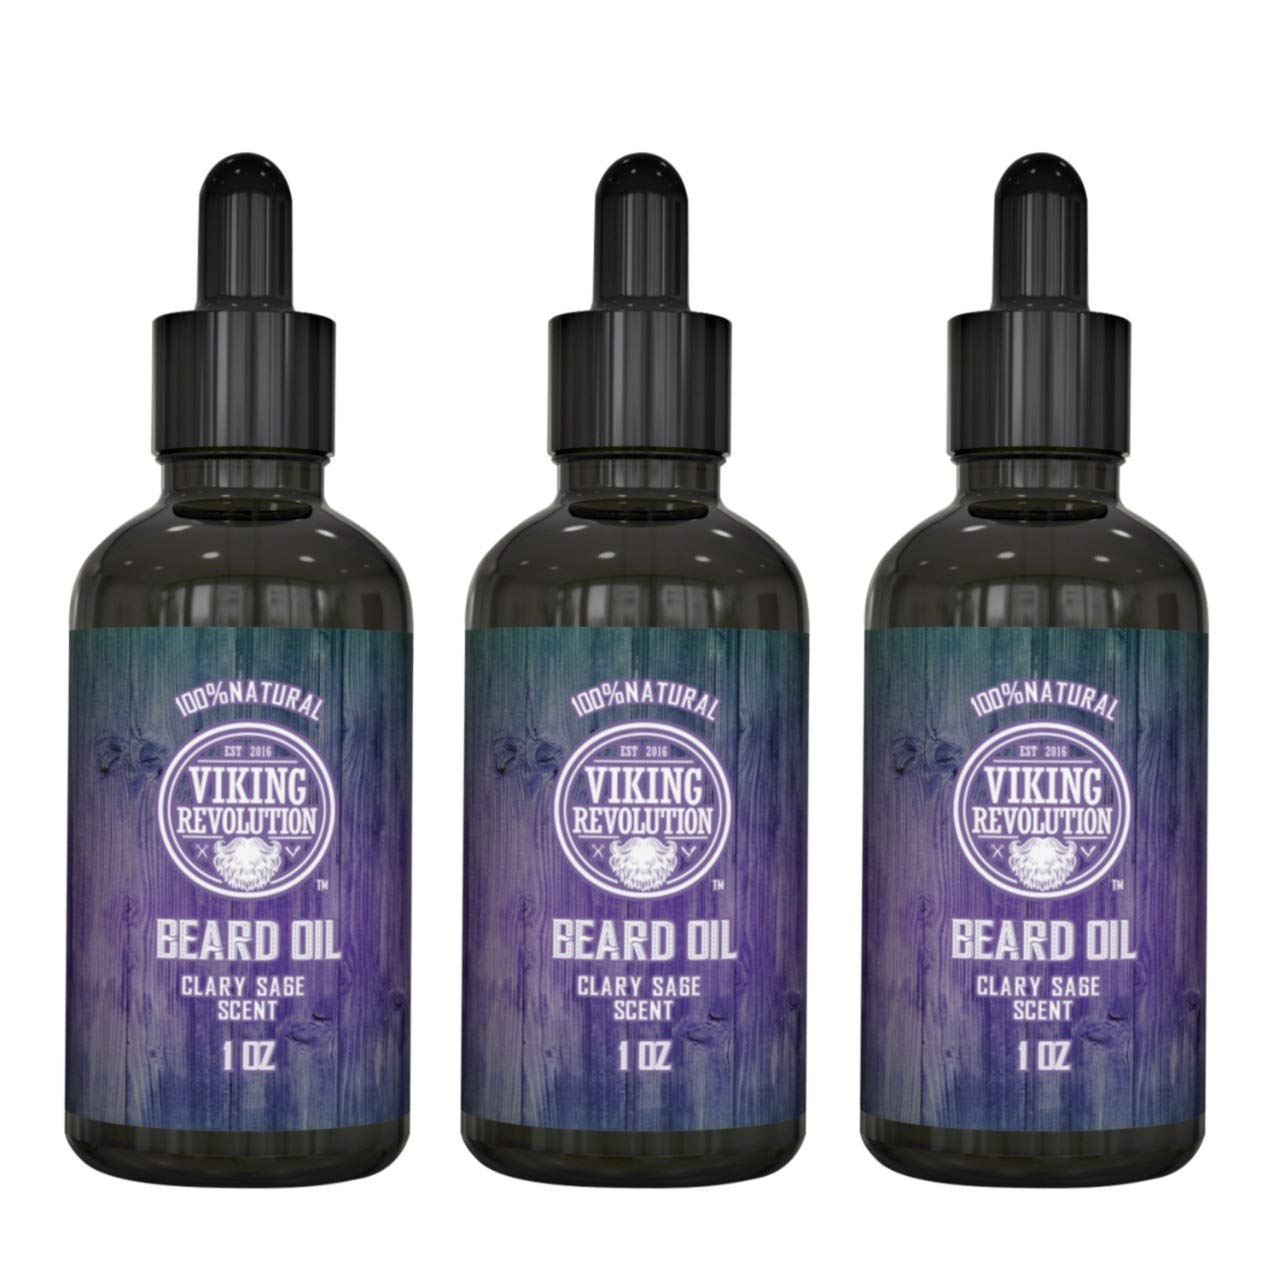 Beard Popularity Manufacturer direct delivery Oil Conditioner - All Natural Clary Argan Sage with Scent